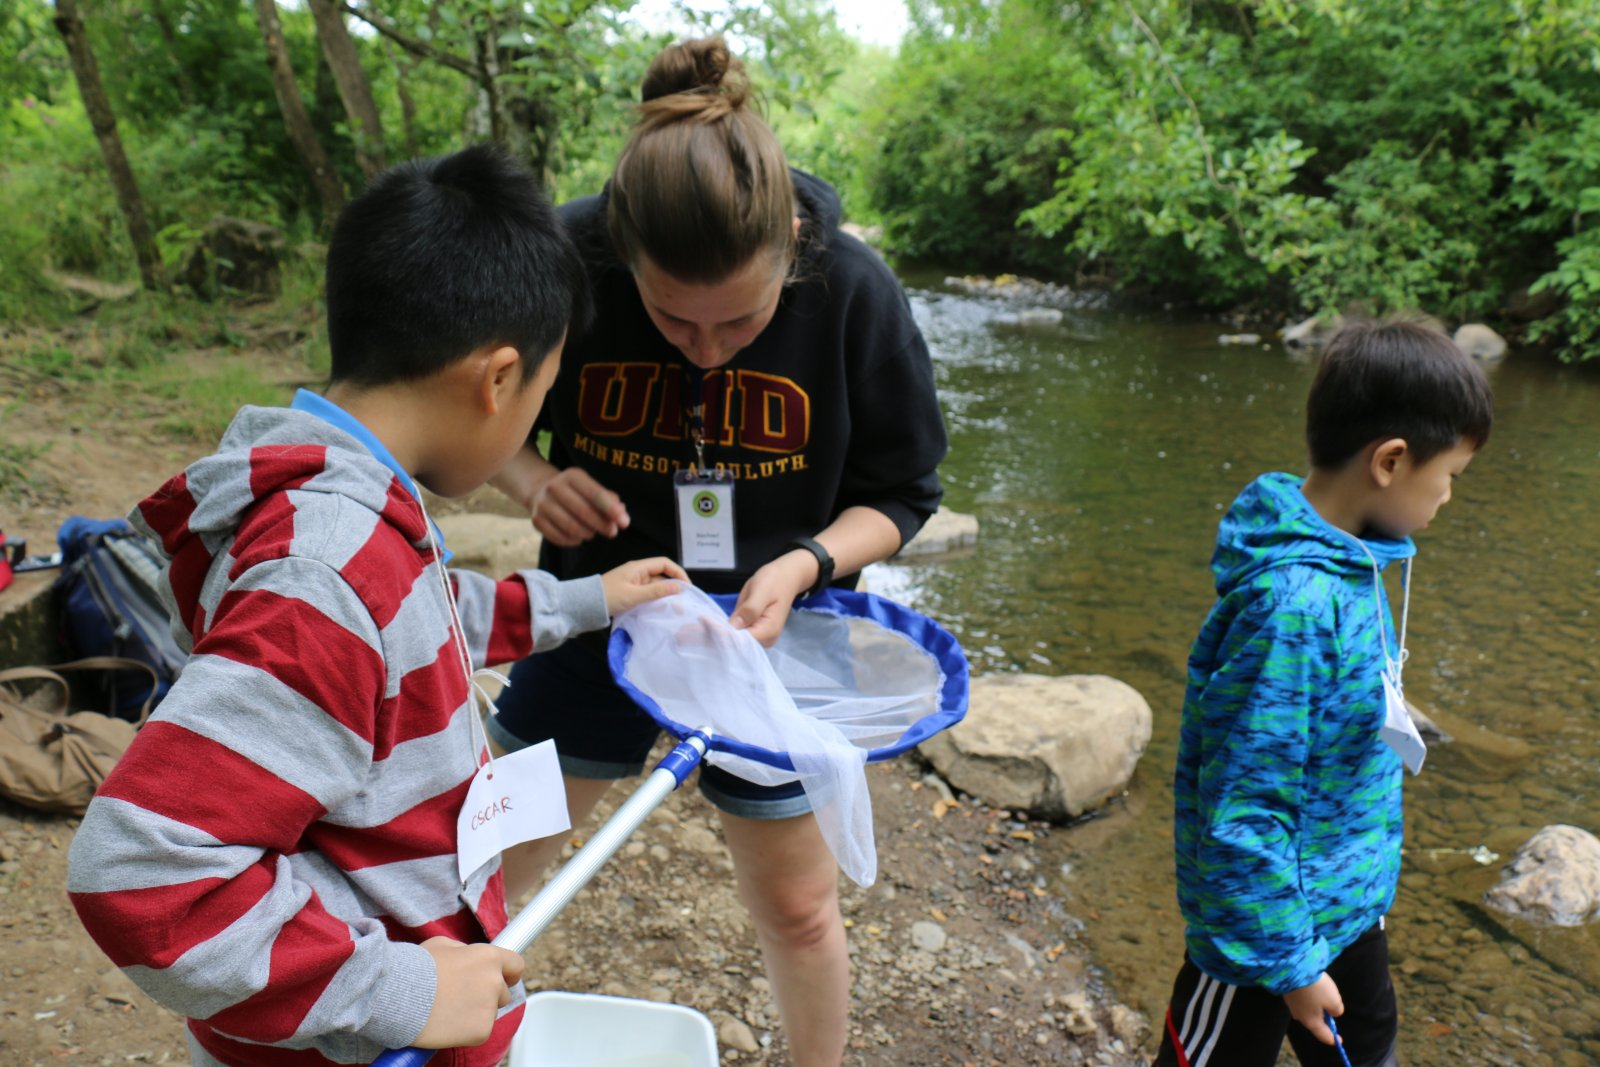 Saturday Academy students working with instructor outside in biology summer camp